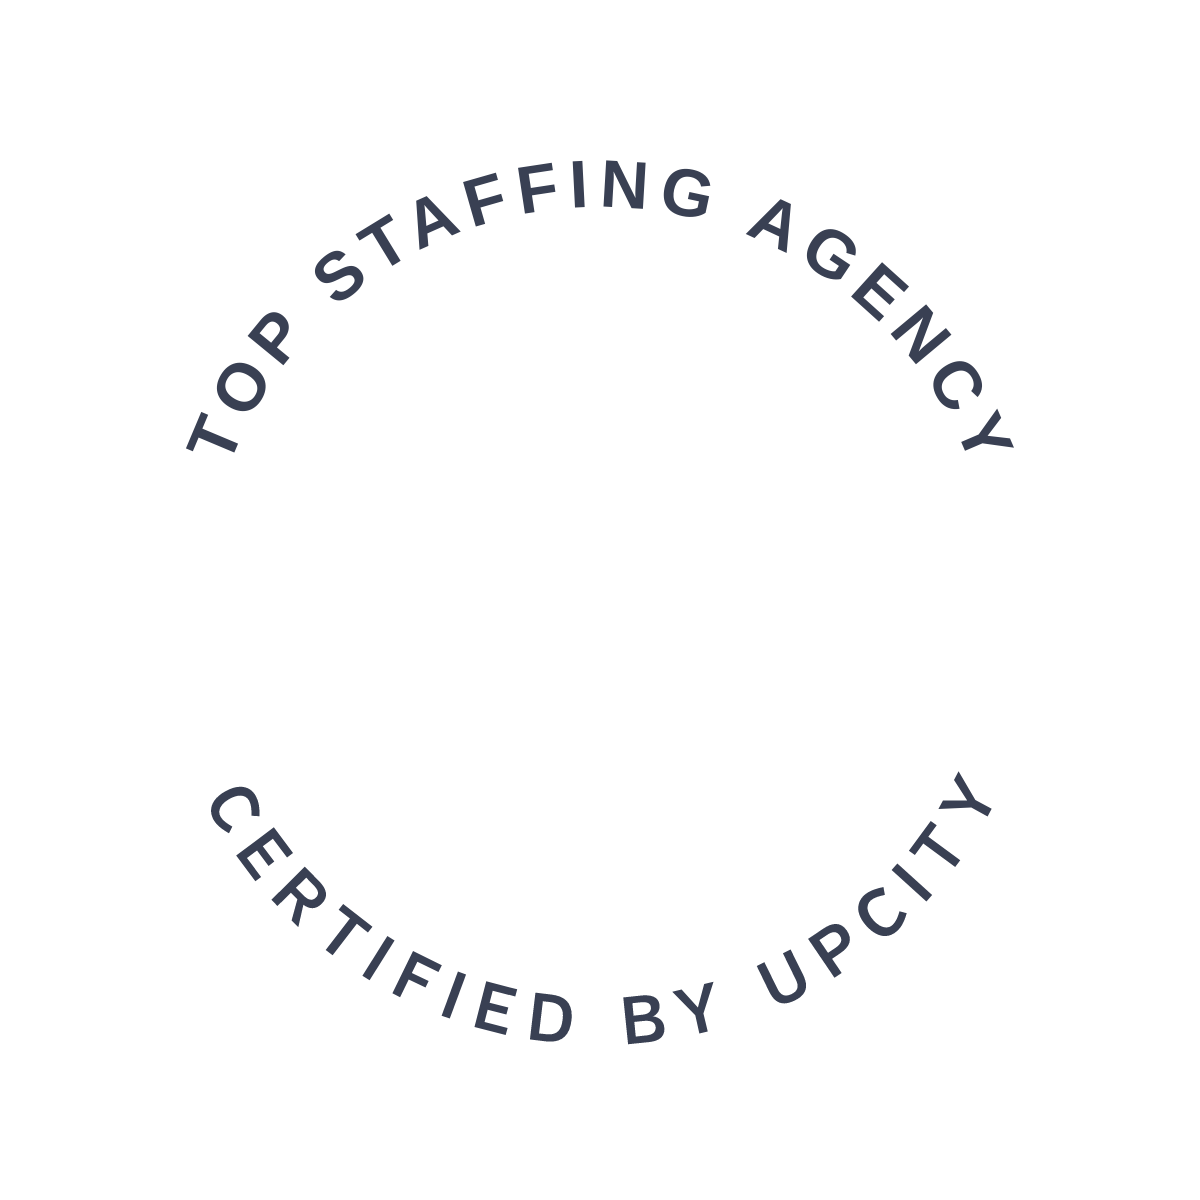 TOP STAFFING AGENCY